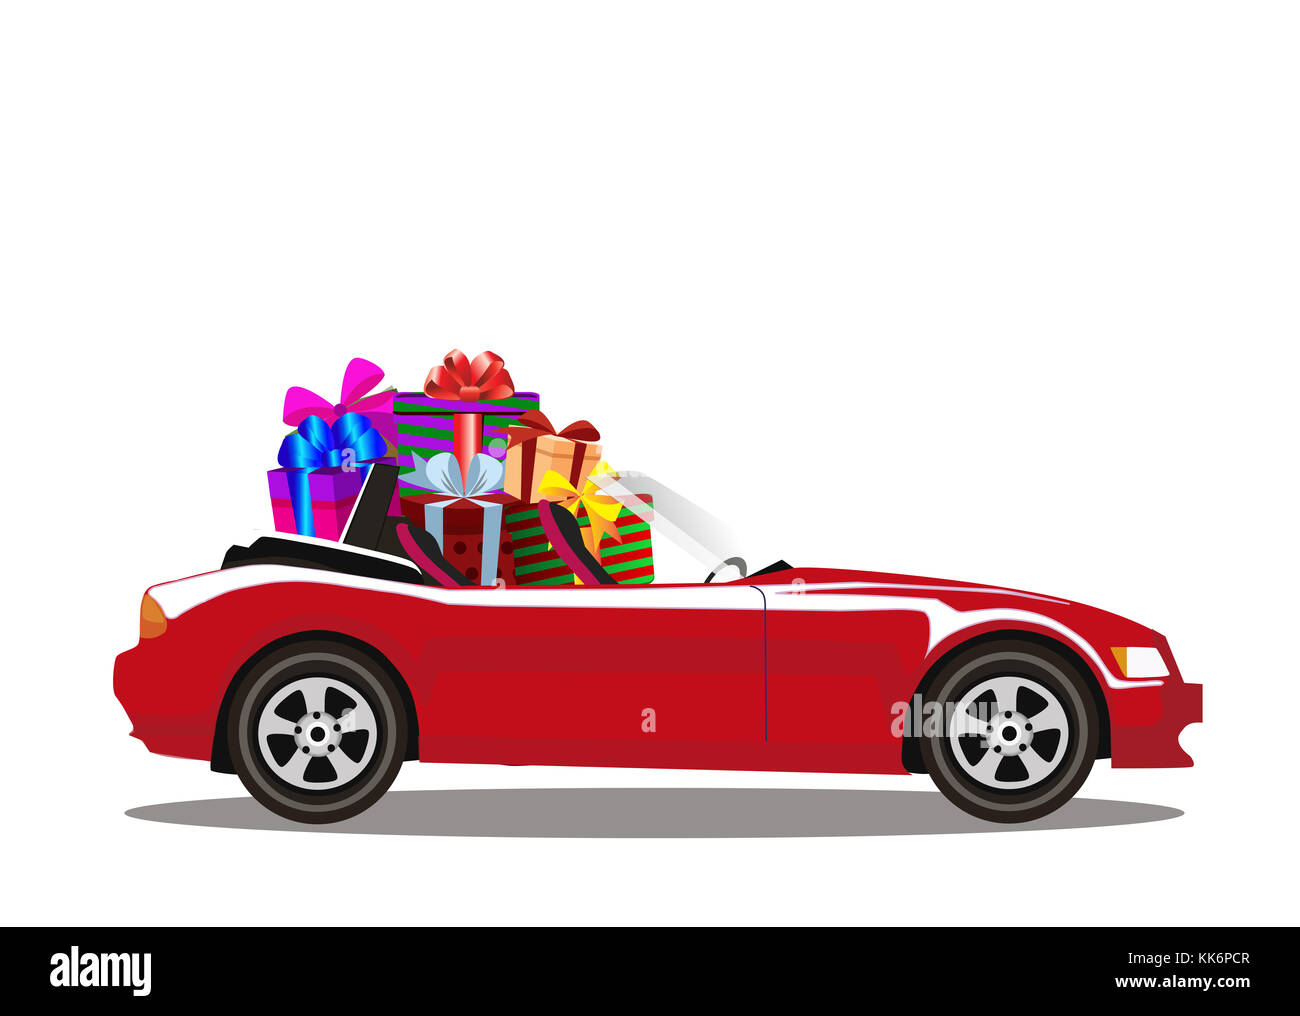 Red modern cartoon cabriolet car full of gift boxes isolated on white background. Sports car. Vector illustration. - Stock Image